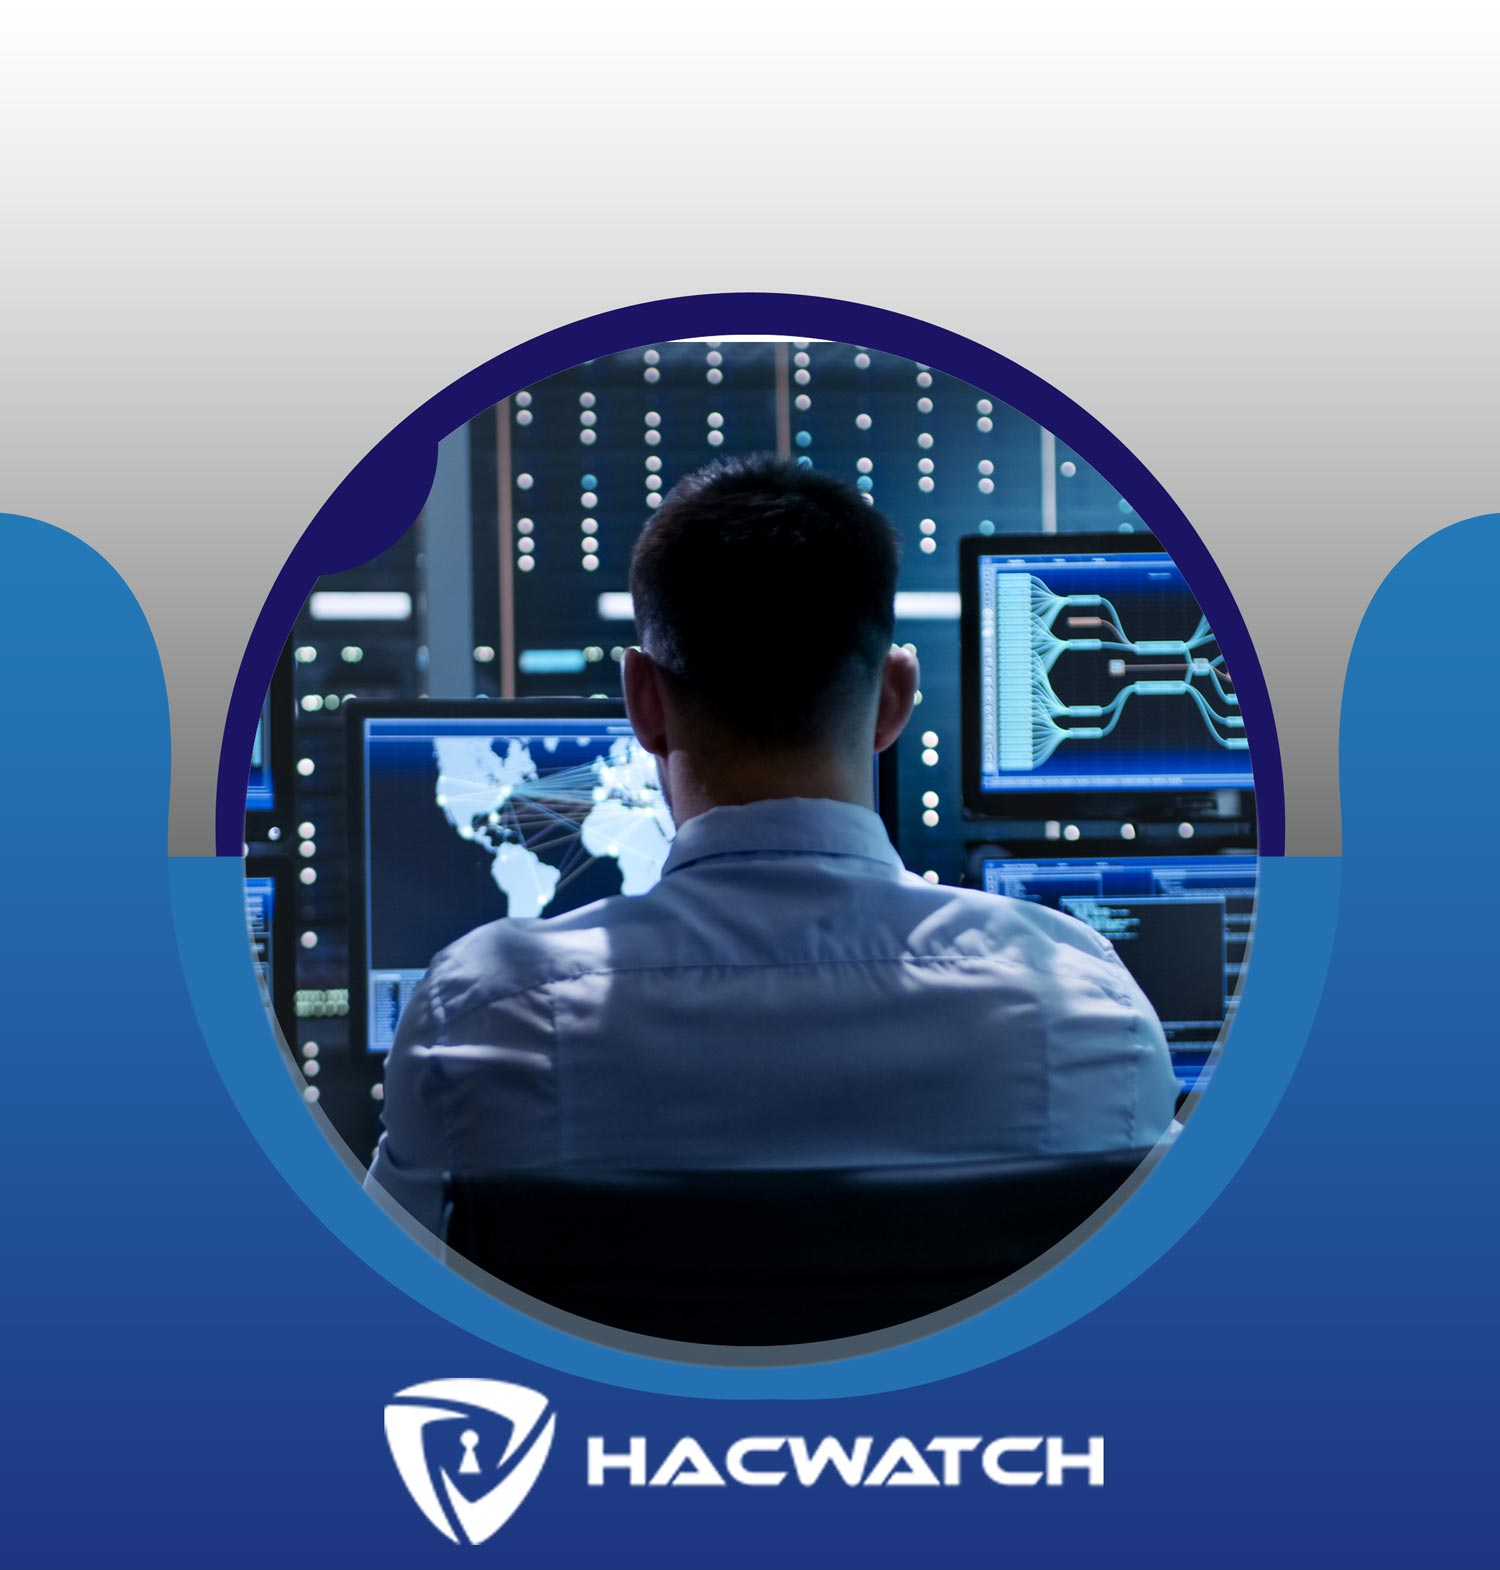 33692077, Cyber Security